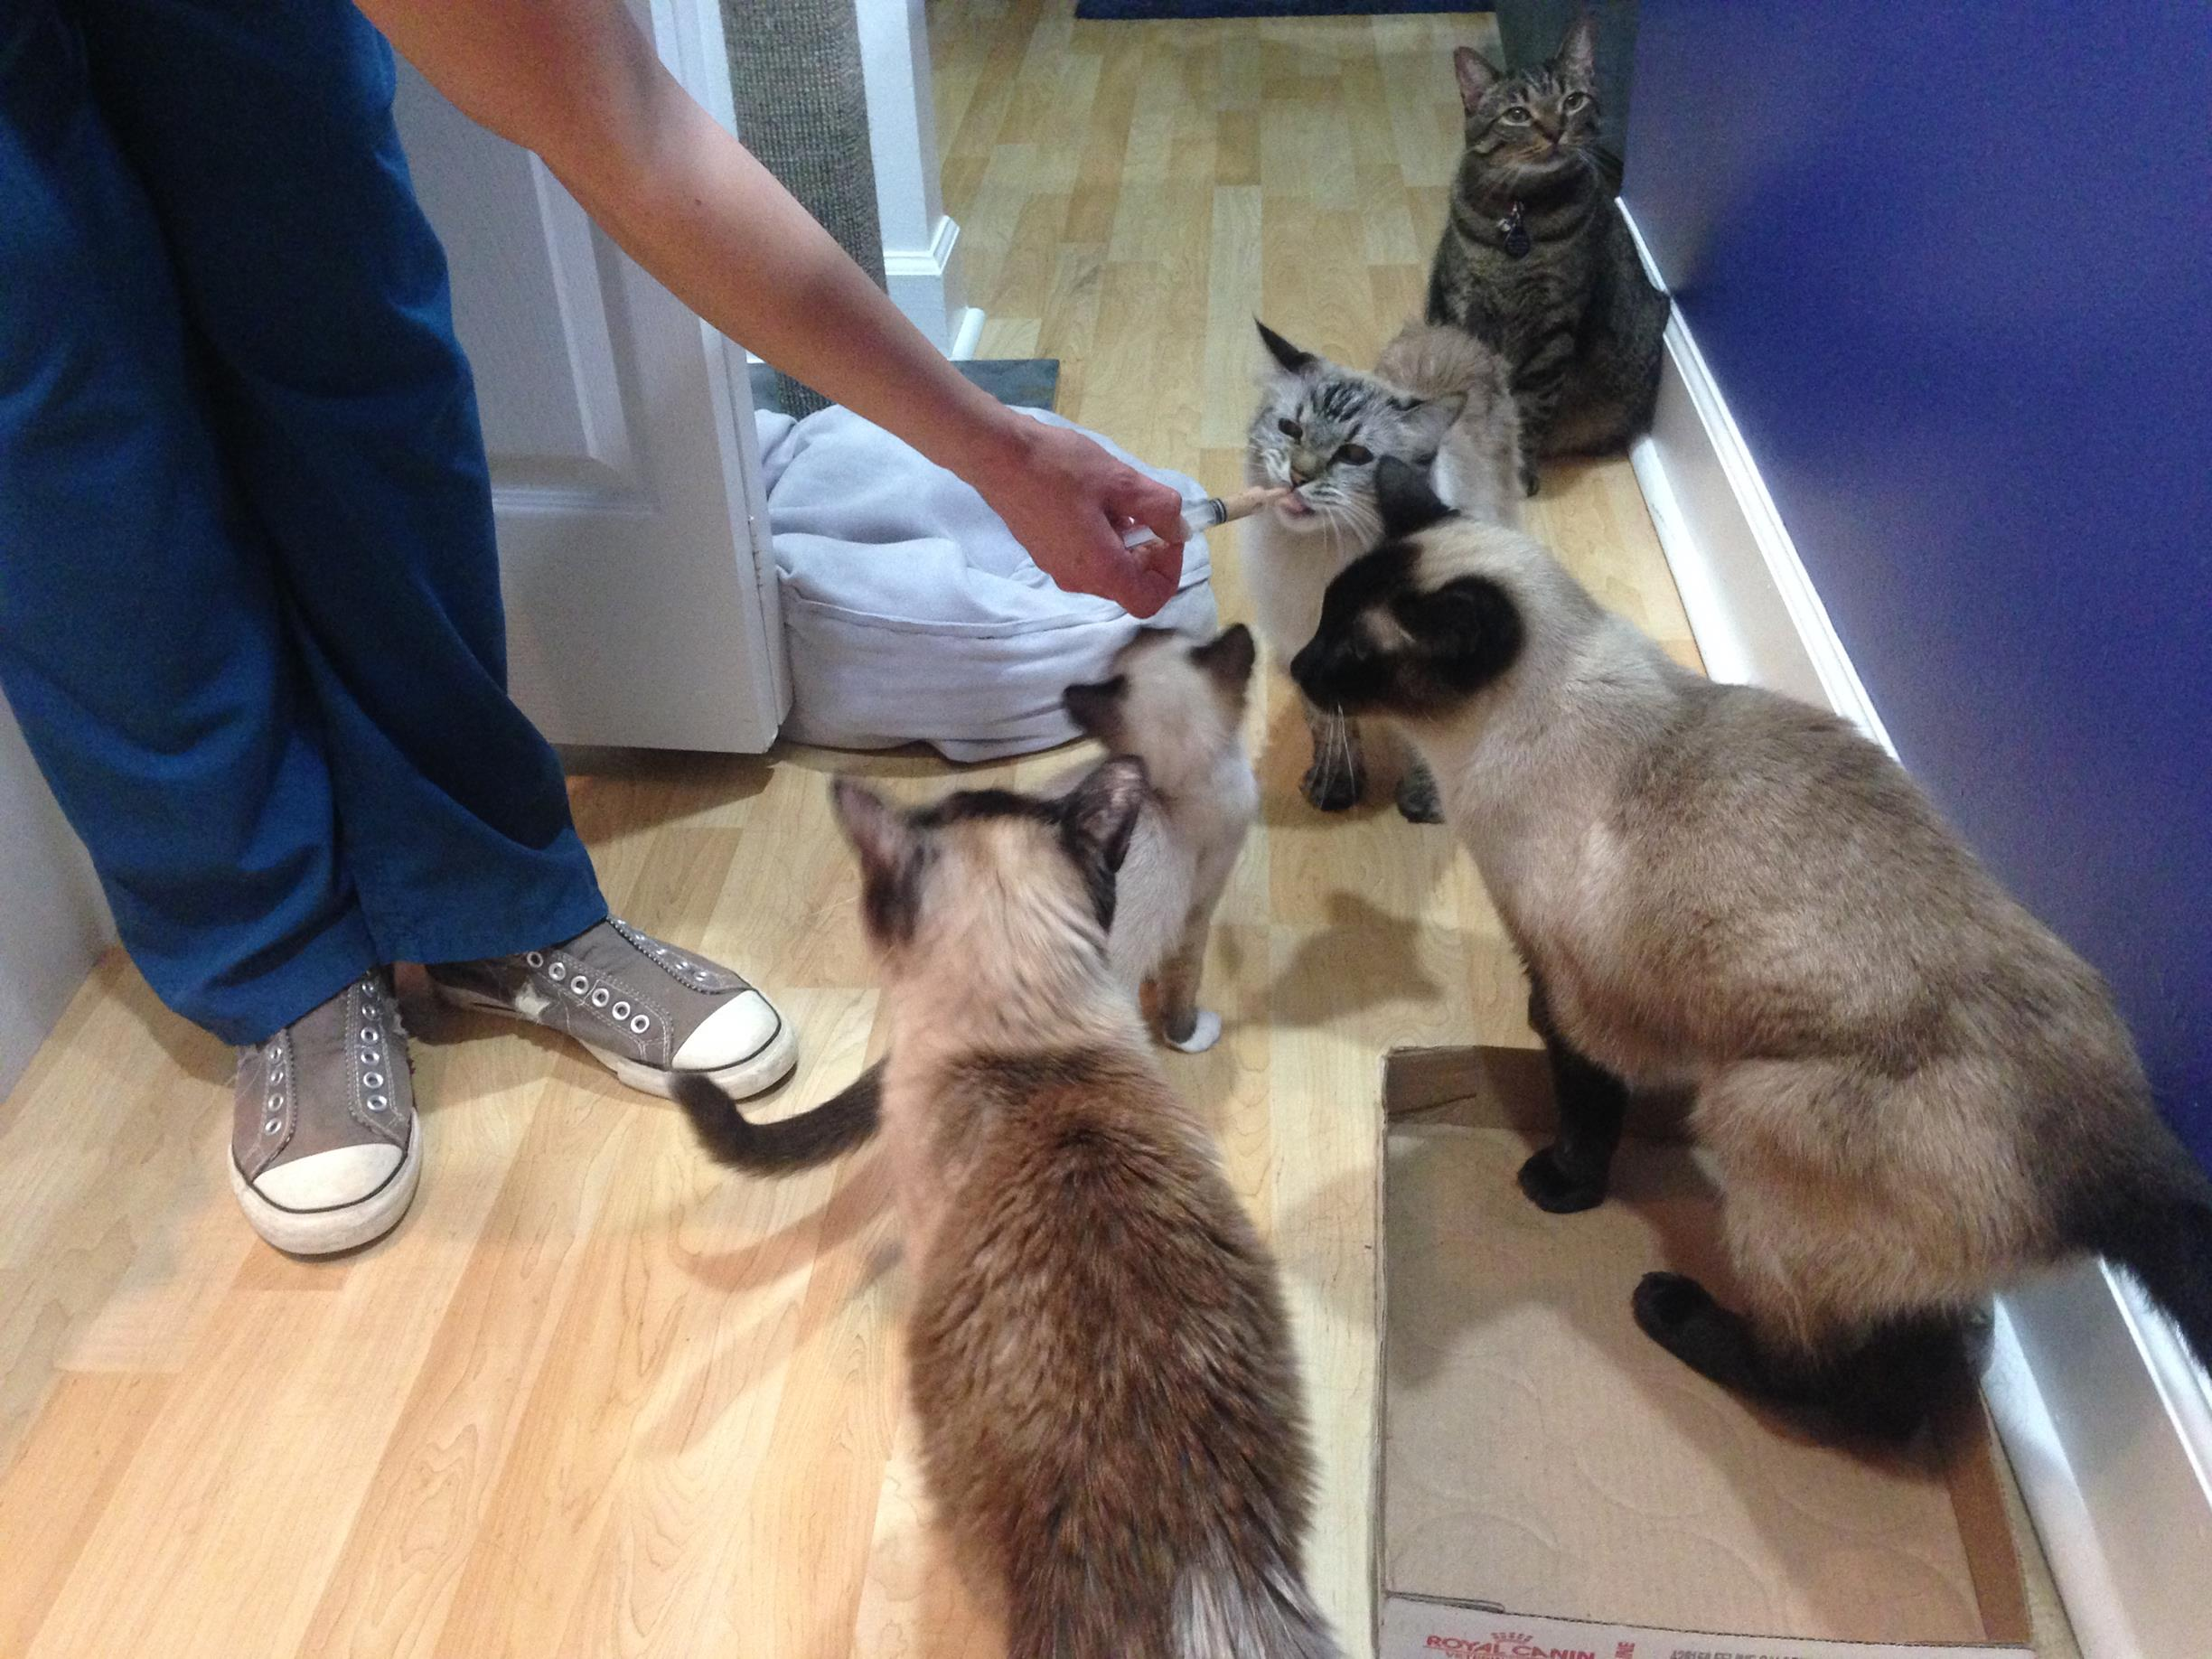 A few words about how to accustom a cat to scratching